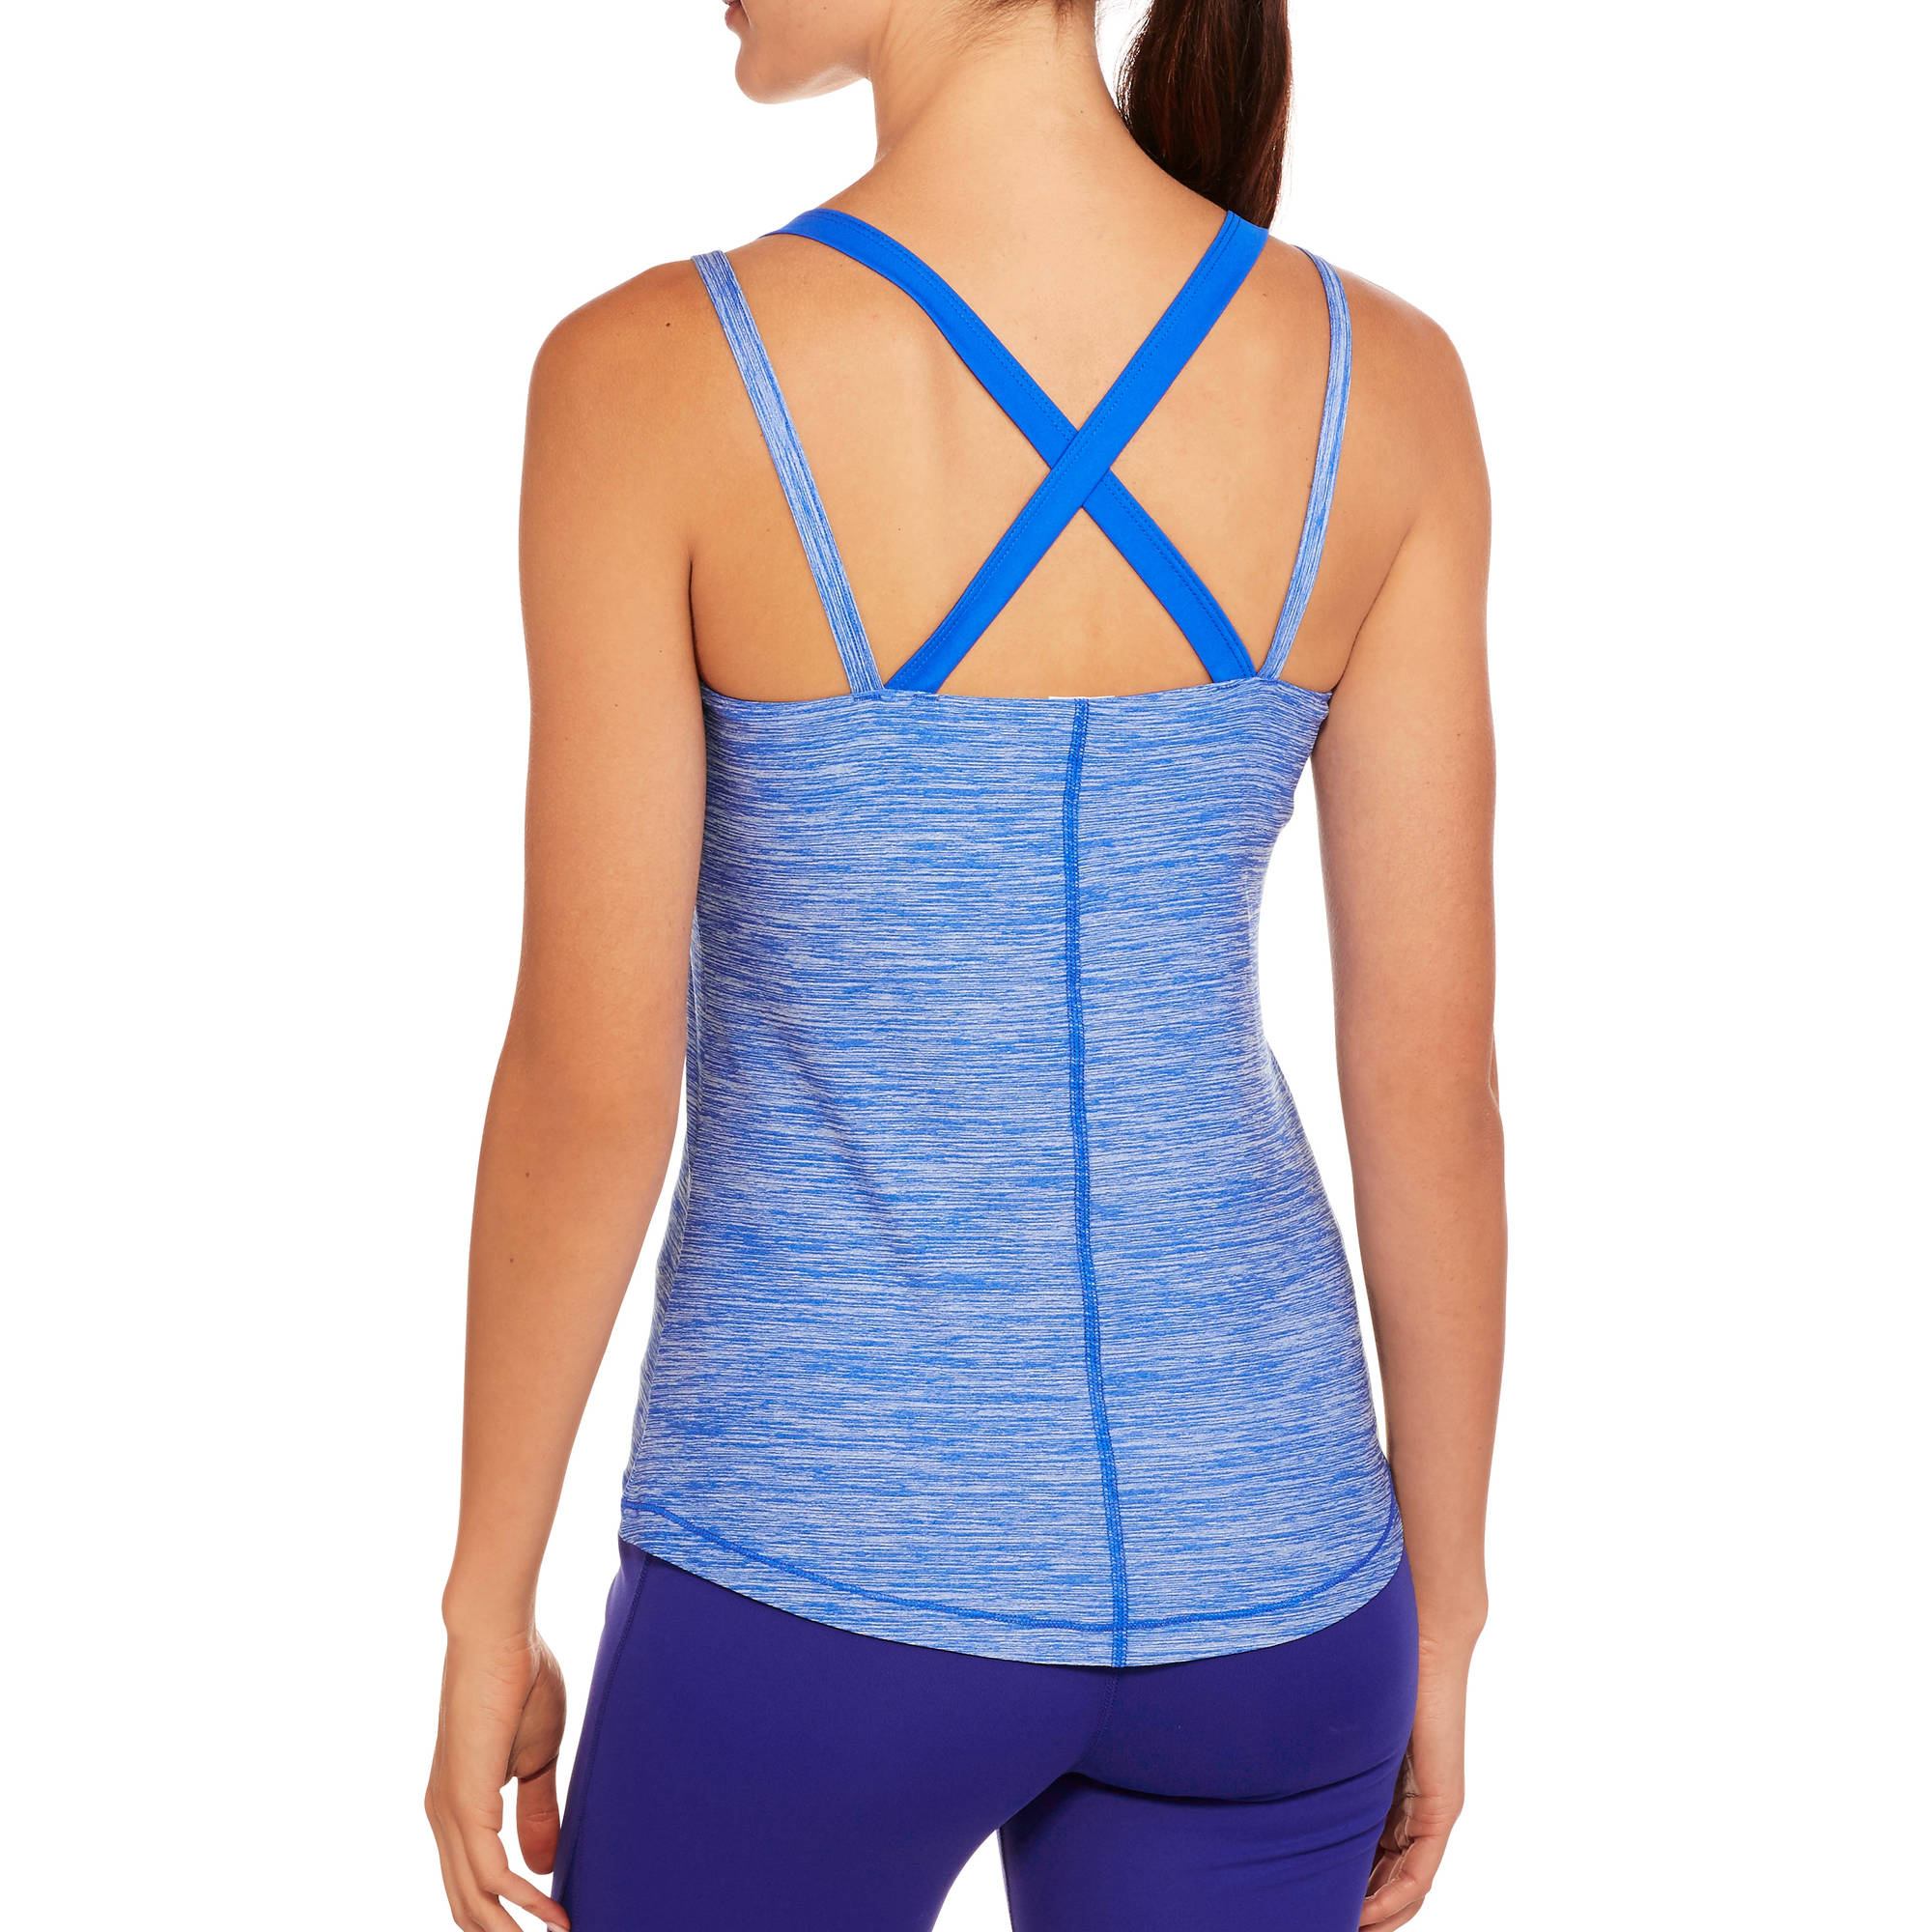 Danskin Now Women's Active Performance Tank with Built-In Sports Bra and Strappy Back